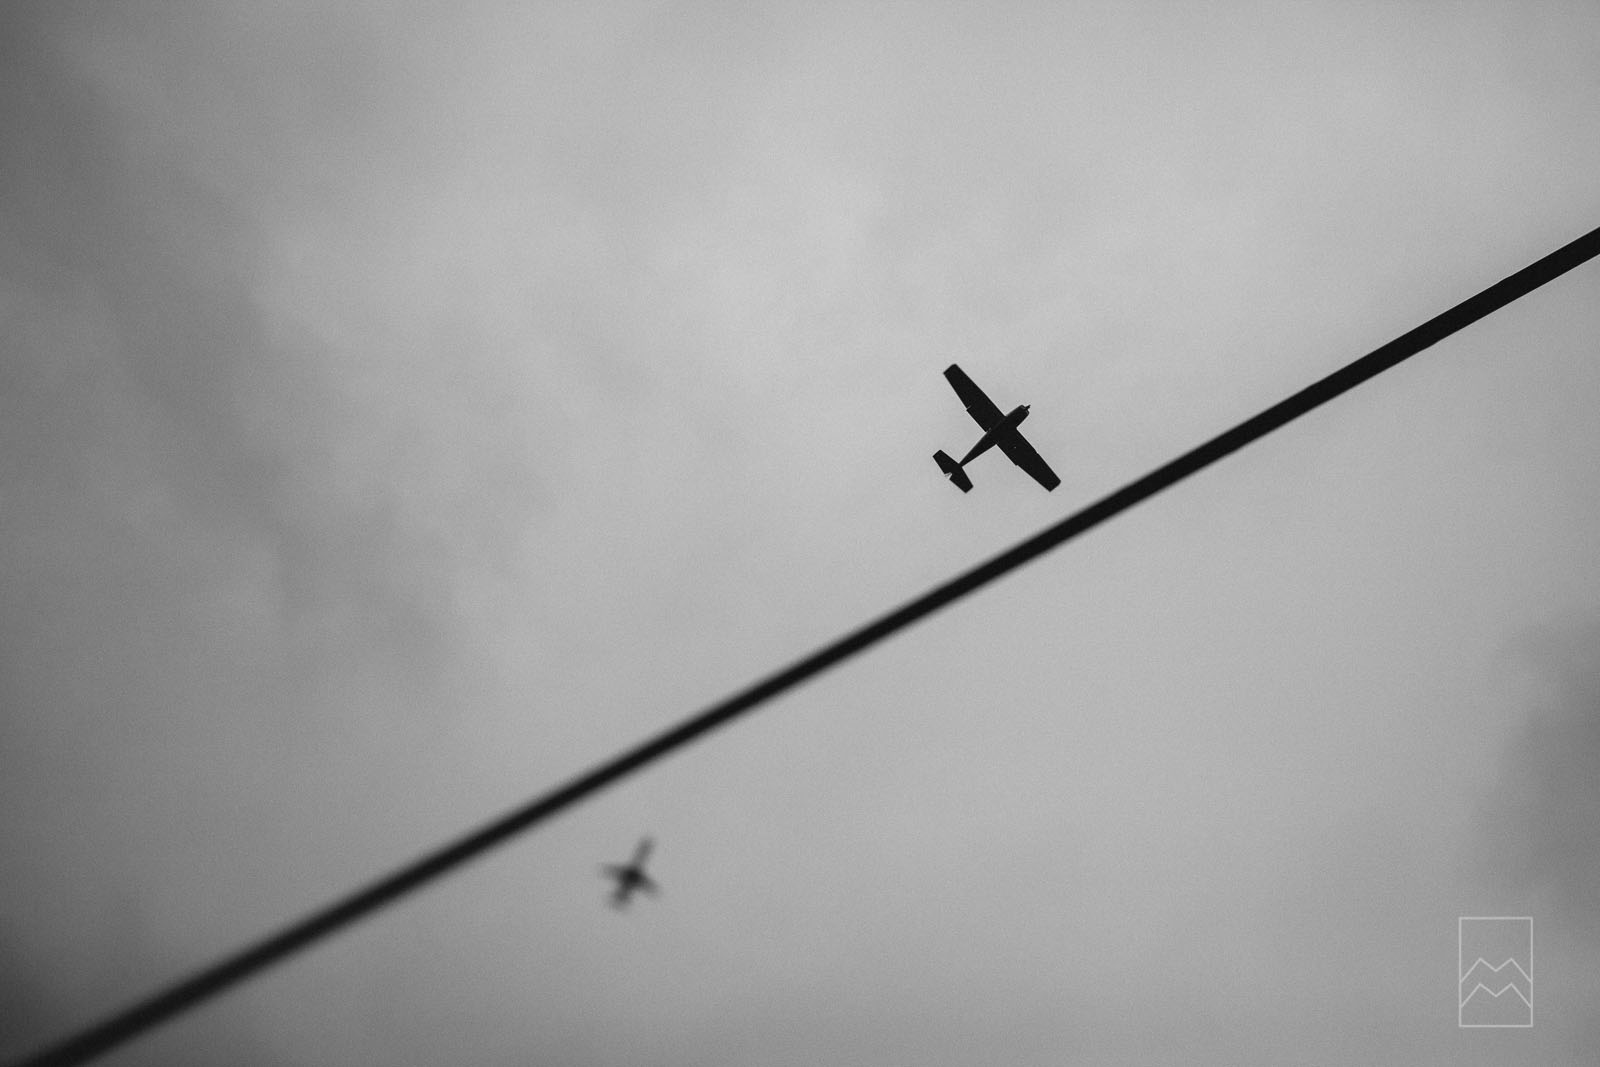 tilt-shift picture of airplanes flying in the sky by Meghan McMackin